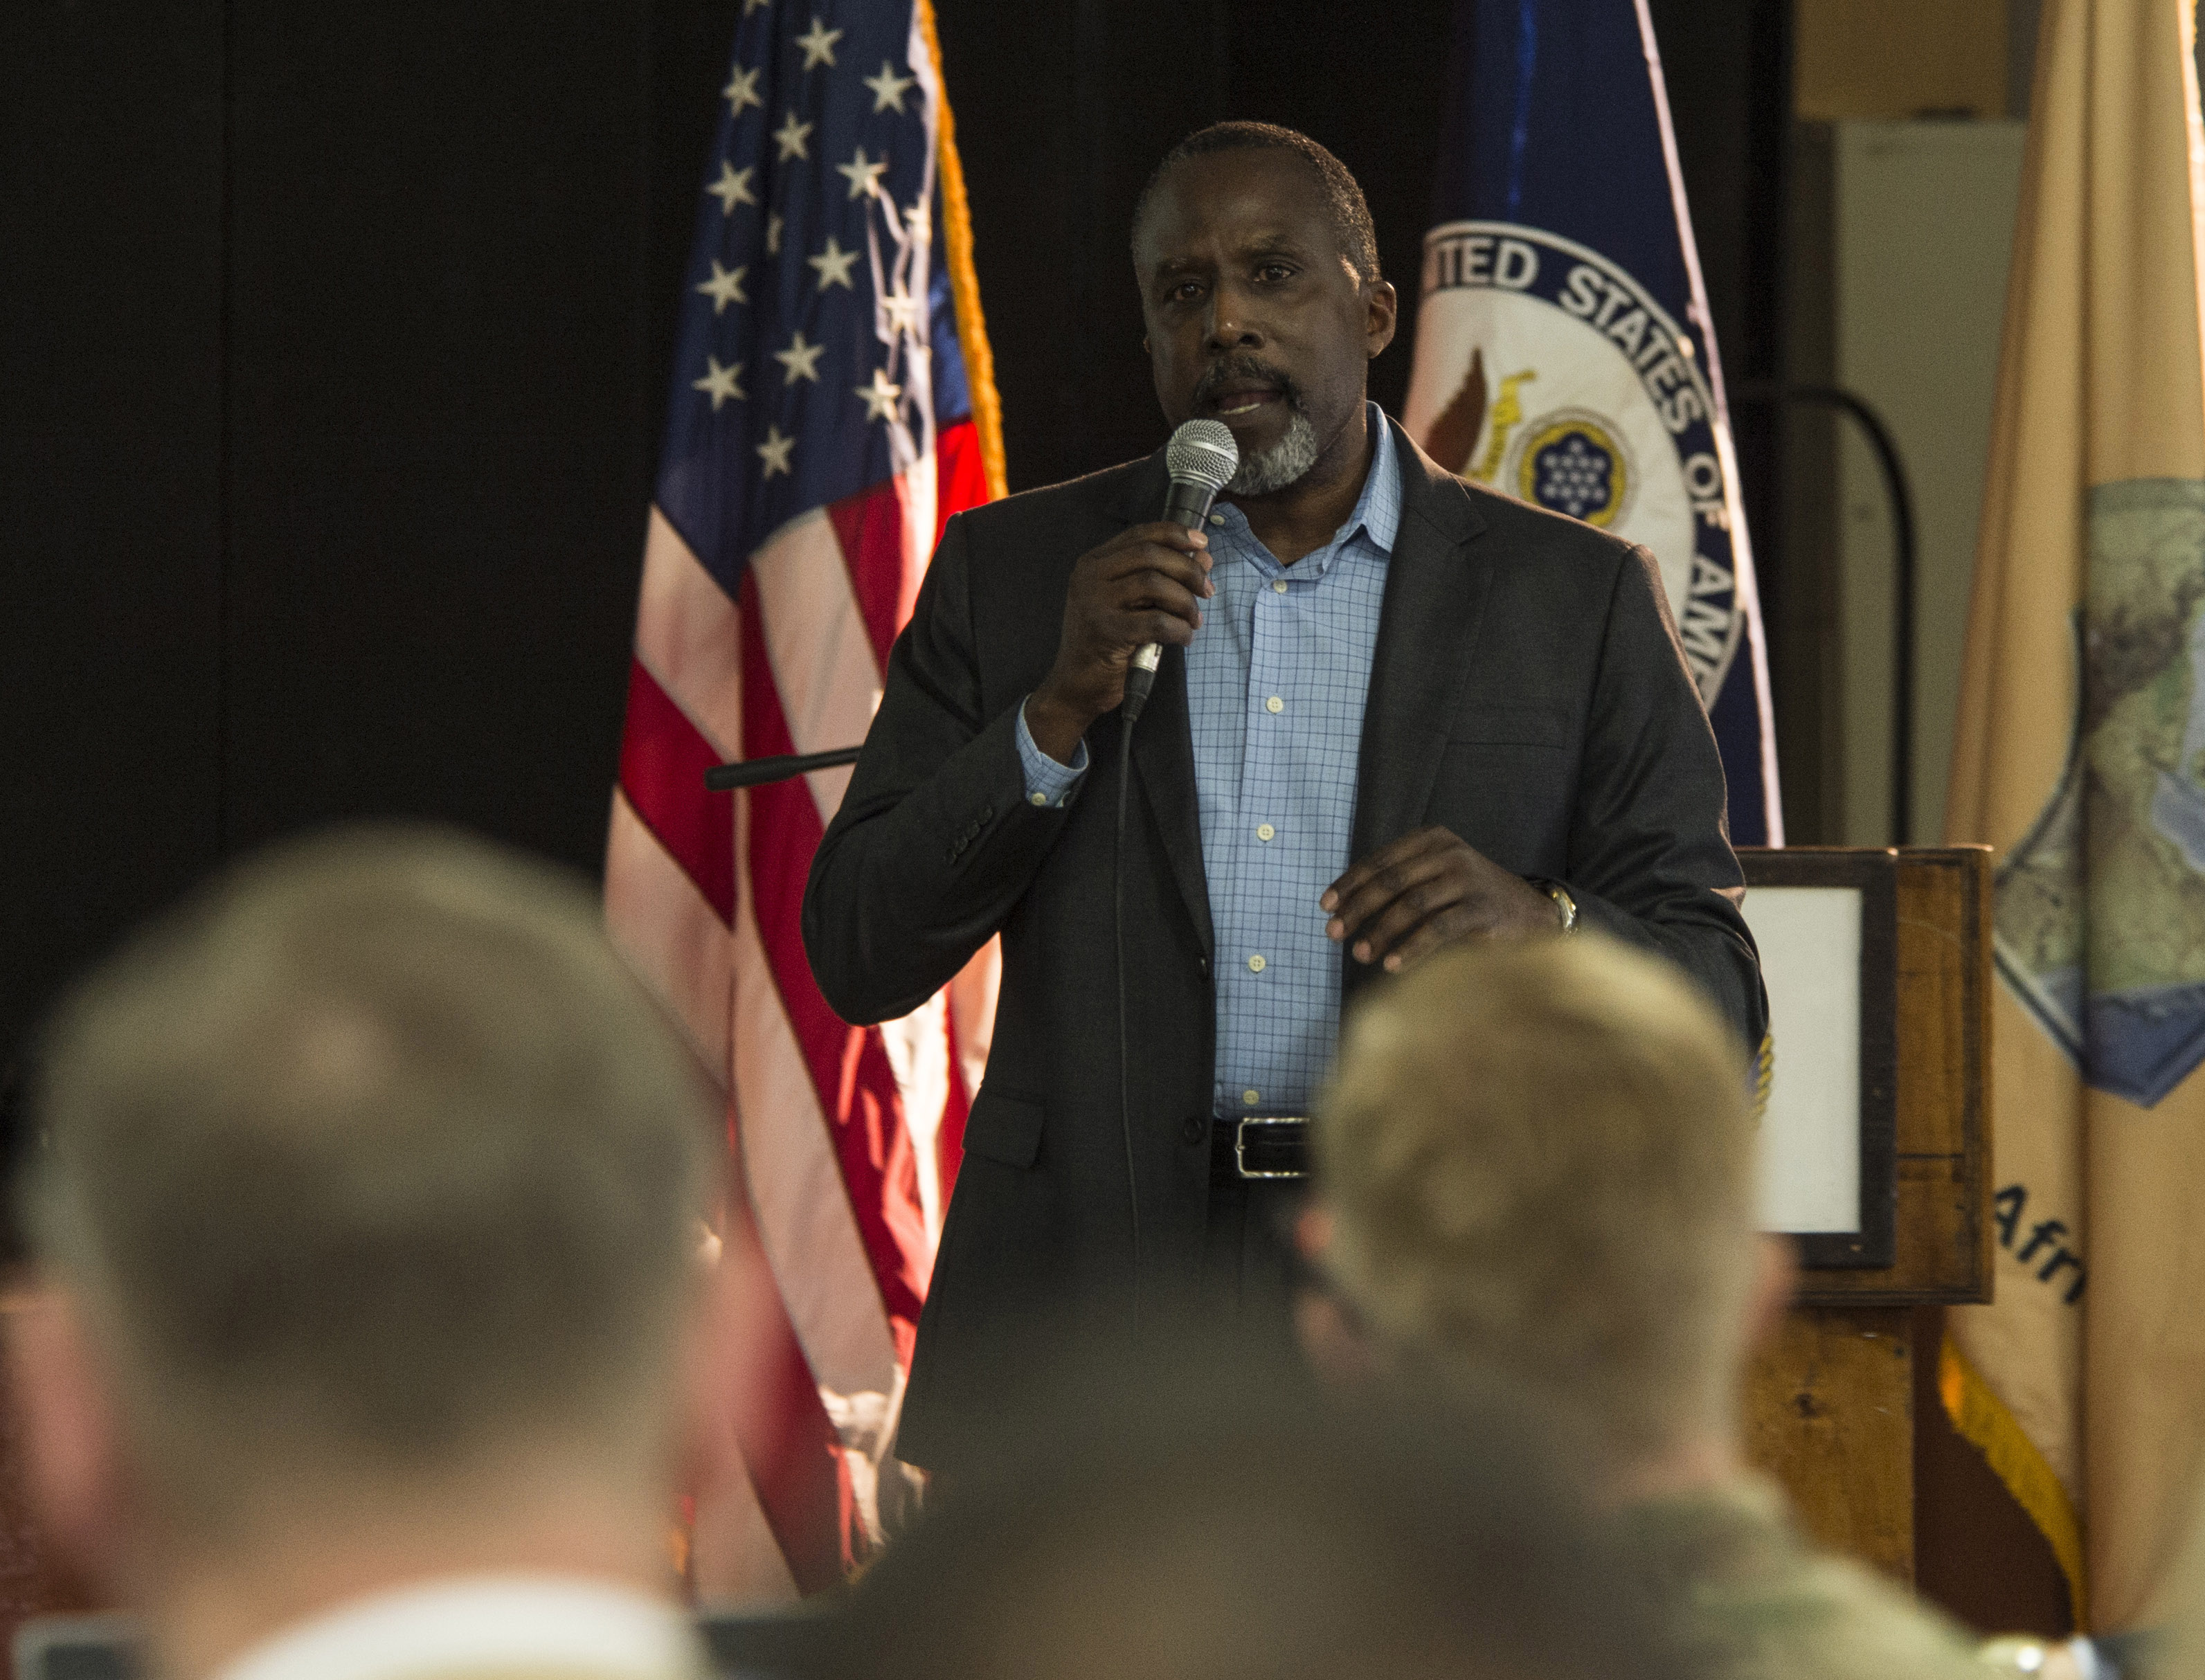 Victor John, Africa Contingency Operations Training and Assistance program operations manager, speaks to audience members during the East Africa Security Synchronization Conference Jan. 20, 2016, at Camp Lemonnier, Djibouti. More than 70 U.S. embassy representatives from each East African country and organizations including the African Union, U.S. Africa Command, and AFRICOM components attended the event to kick start the process of synchronizing and prioritizing all activities in East Africa. (U.S. Air Force photo by Senior Airman Peter Thompson)